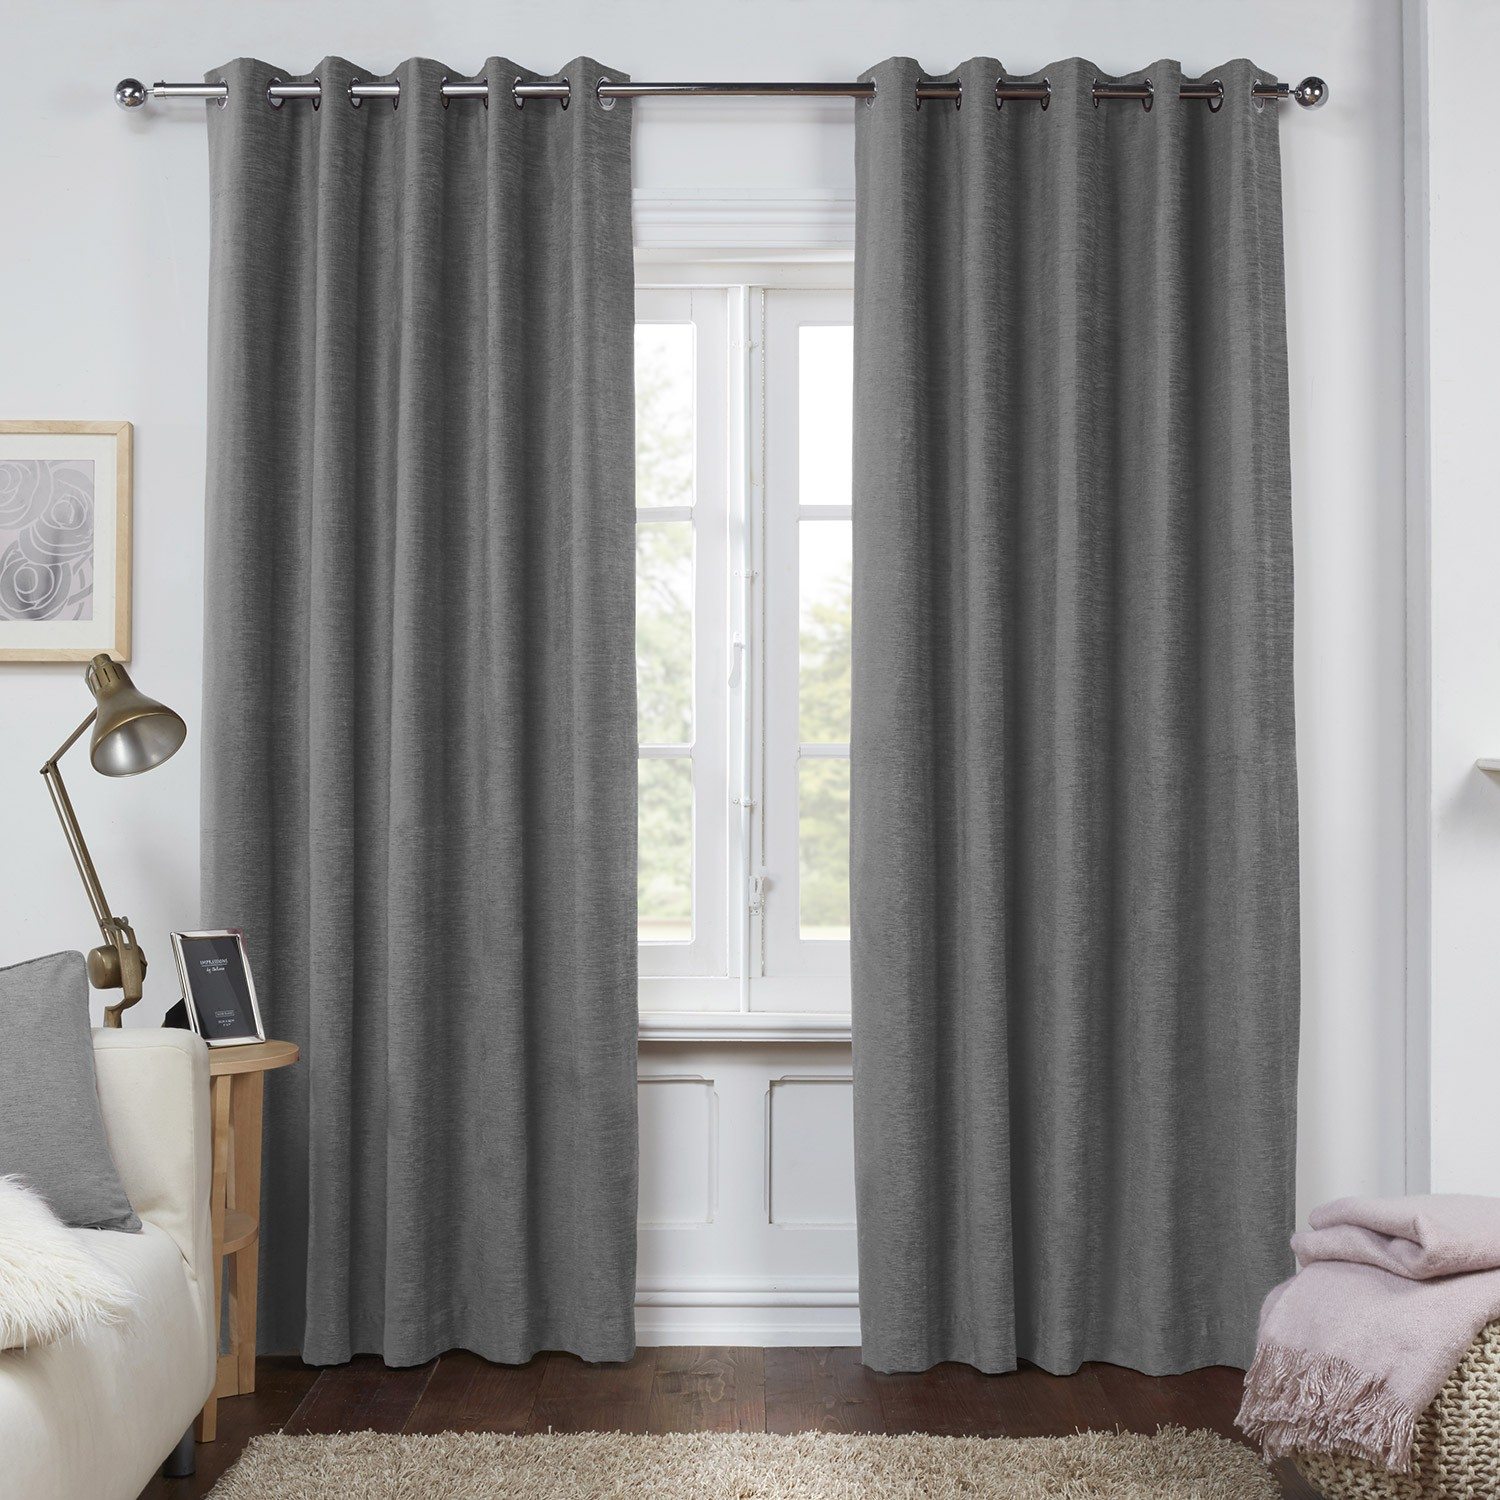 dante charcoal grey luxury soft chenille lined eyelet curtains (pair) HIBZOYO